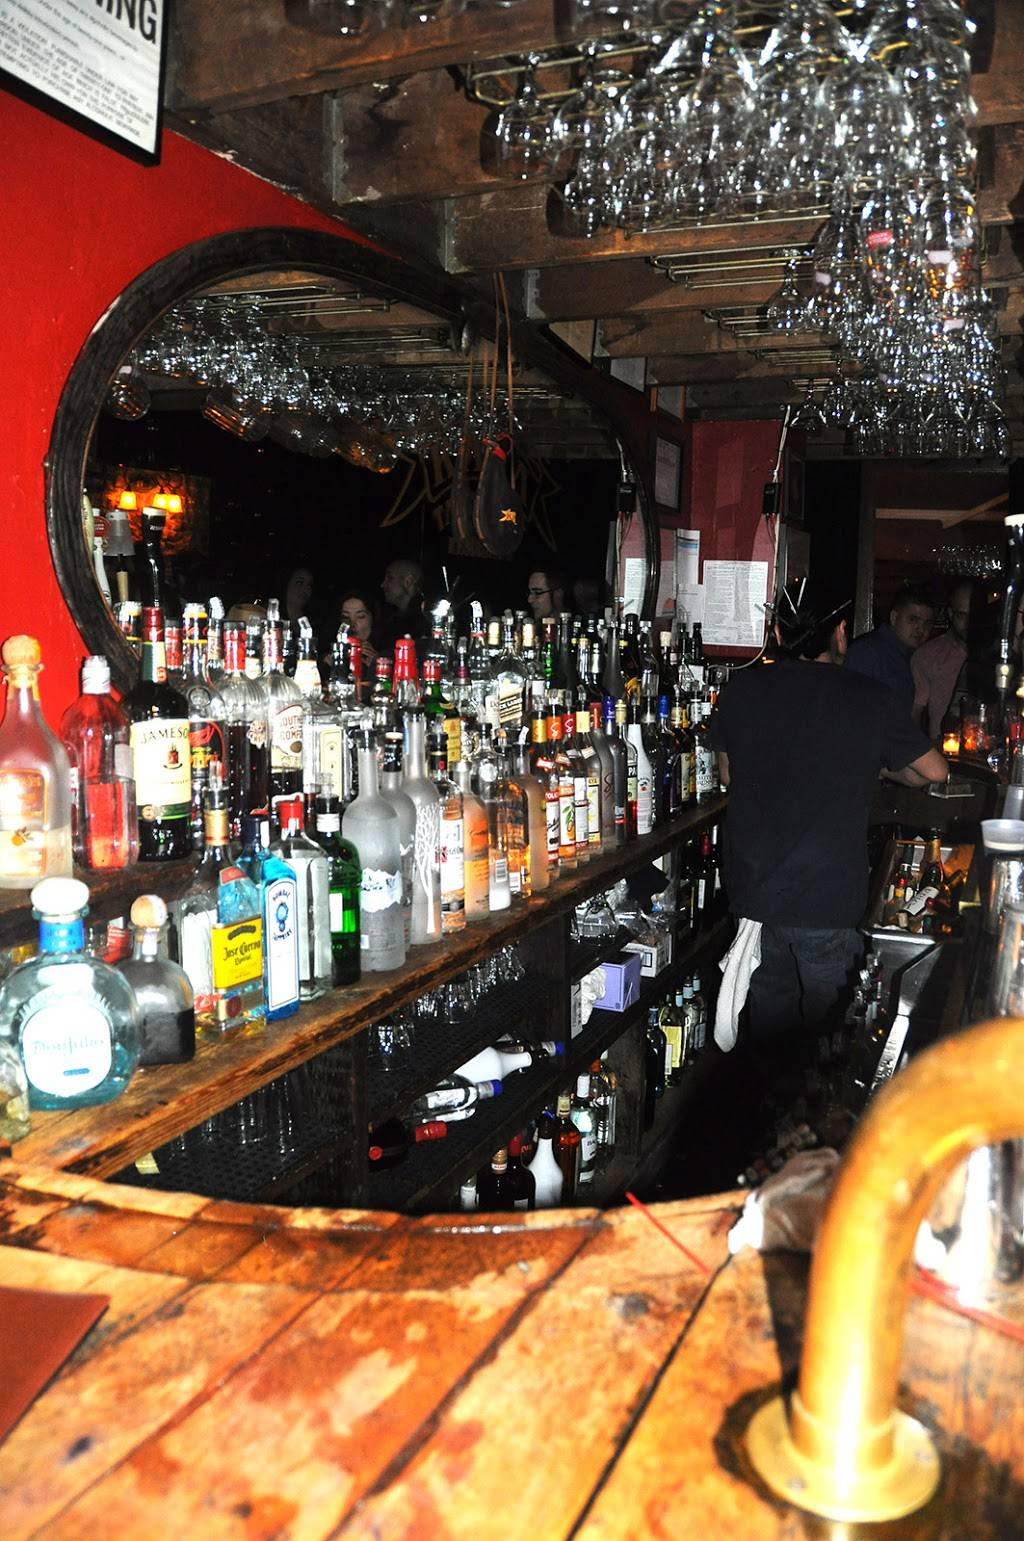 Kana Tapas Bar | night club | 324 Spring St, New York, NY 10013, USA | 2123438180 OR +1 212-343-8180